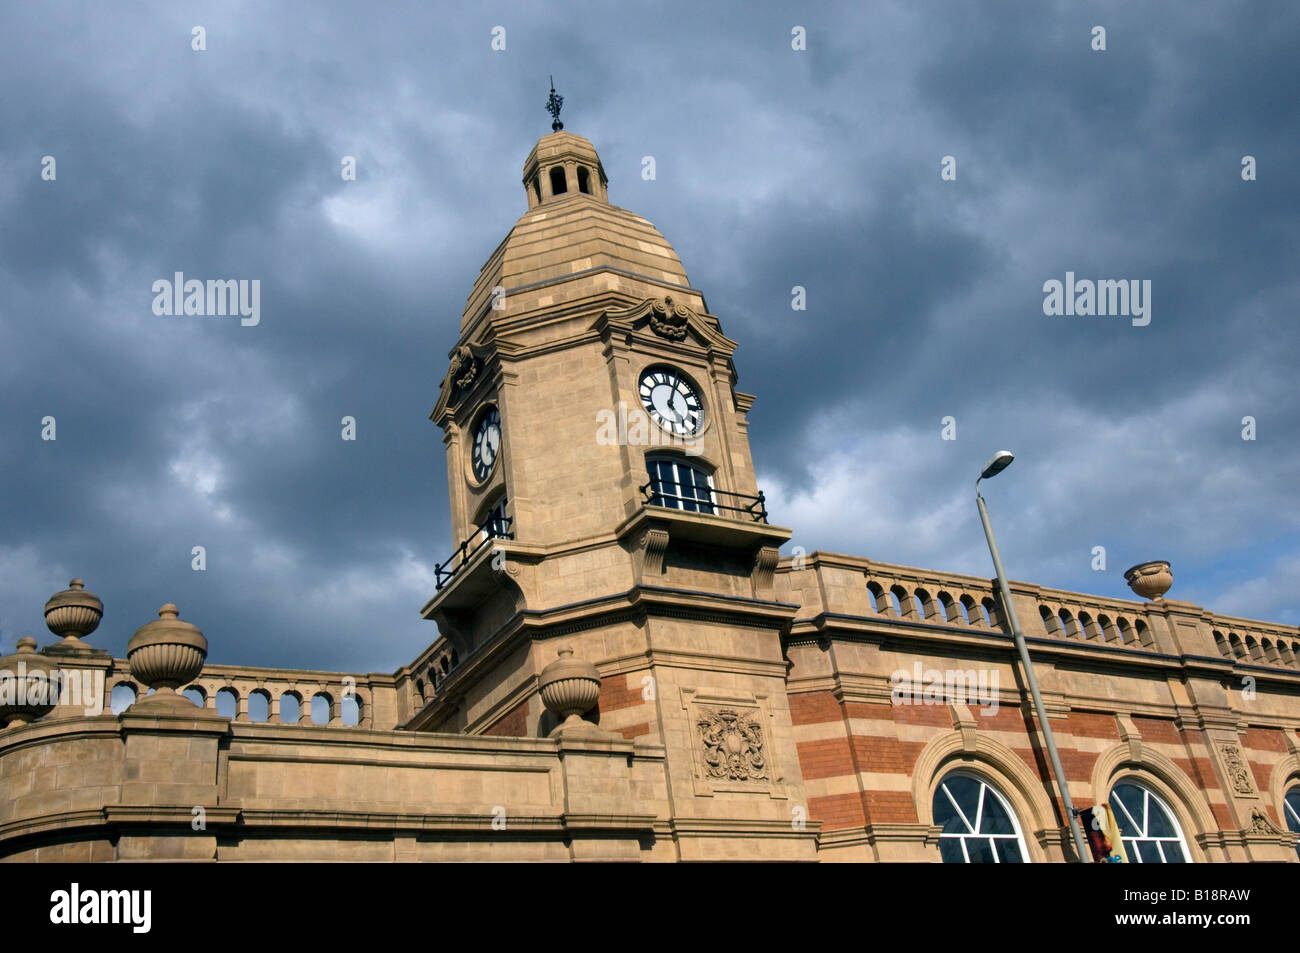 The red brick facade and clock tower of Victorian Leicester London Road Midland Railway Station opened in 1840 - Stock Image